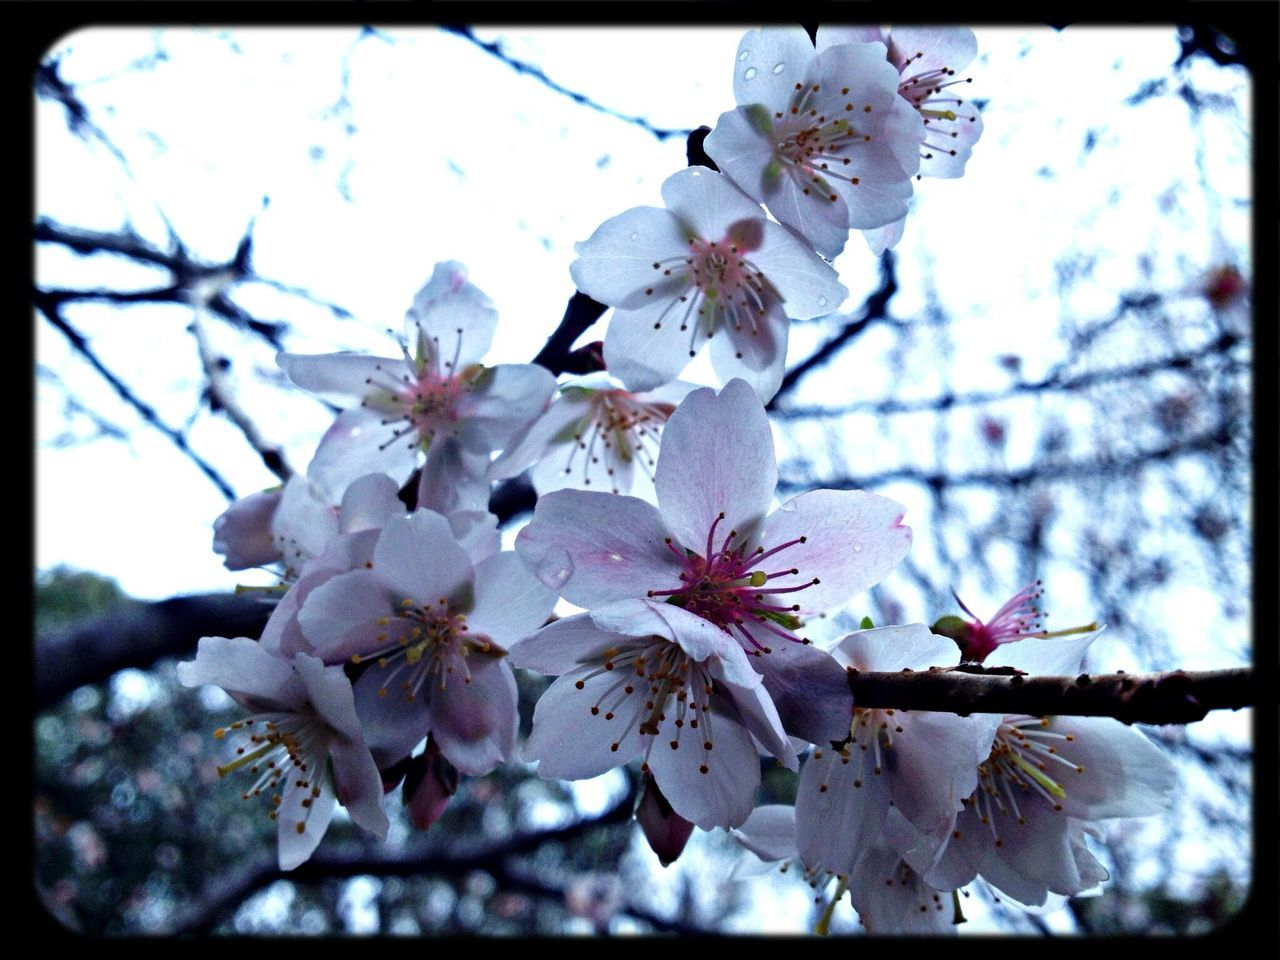 blossom, flower, cherry blossom, fragility, springtime, tree, beauty in nature, branch, apple blossom, botany, cherry tree, orchard, apple tree, growth, nature, freshness, petal, stamen, white color, plum blossom, twig, flower head, almond tree, day, no people, selective focus, low angle view, pollen, outdoors, close-up, blooming, sky